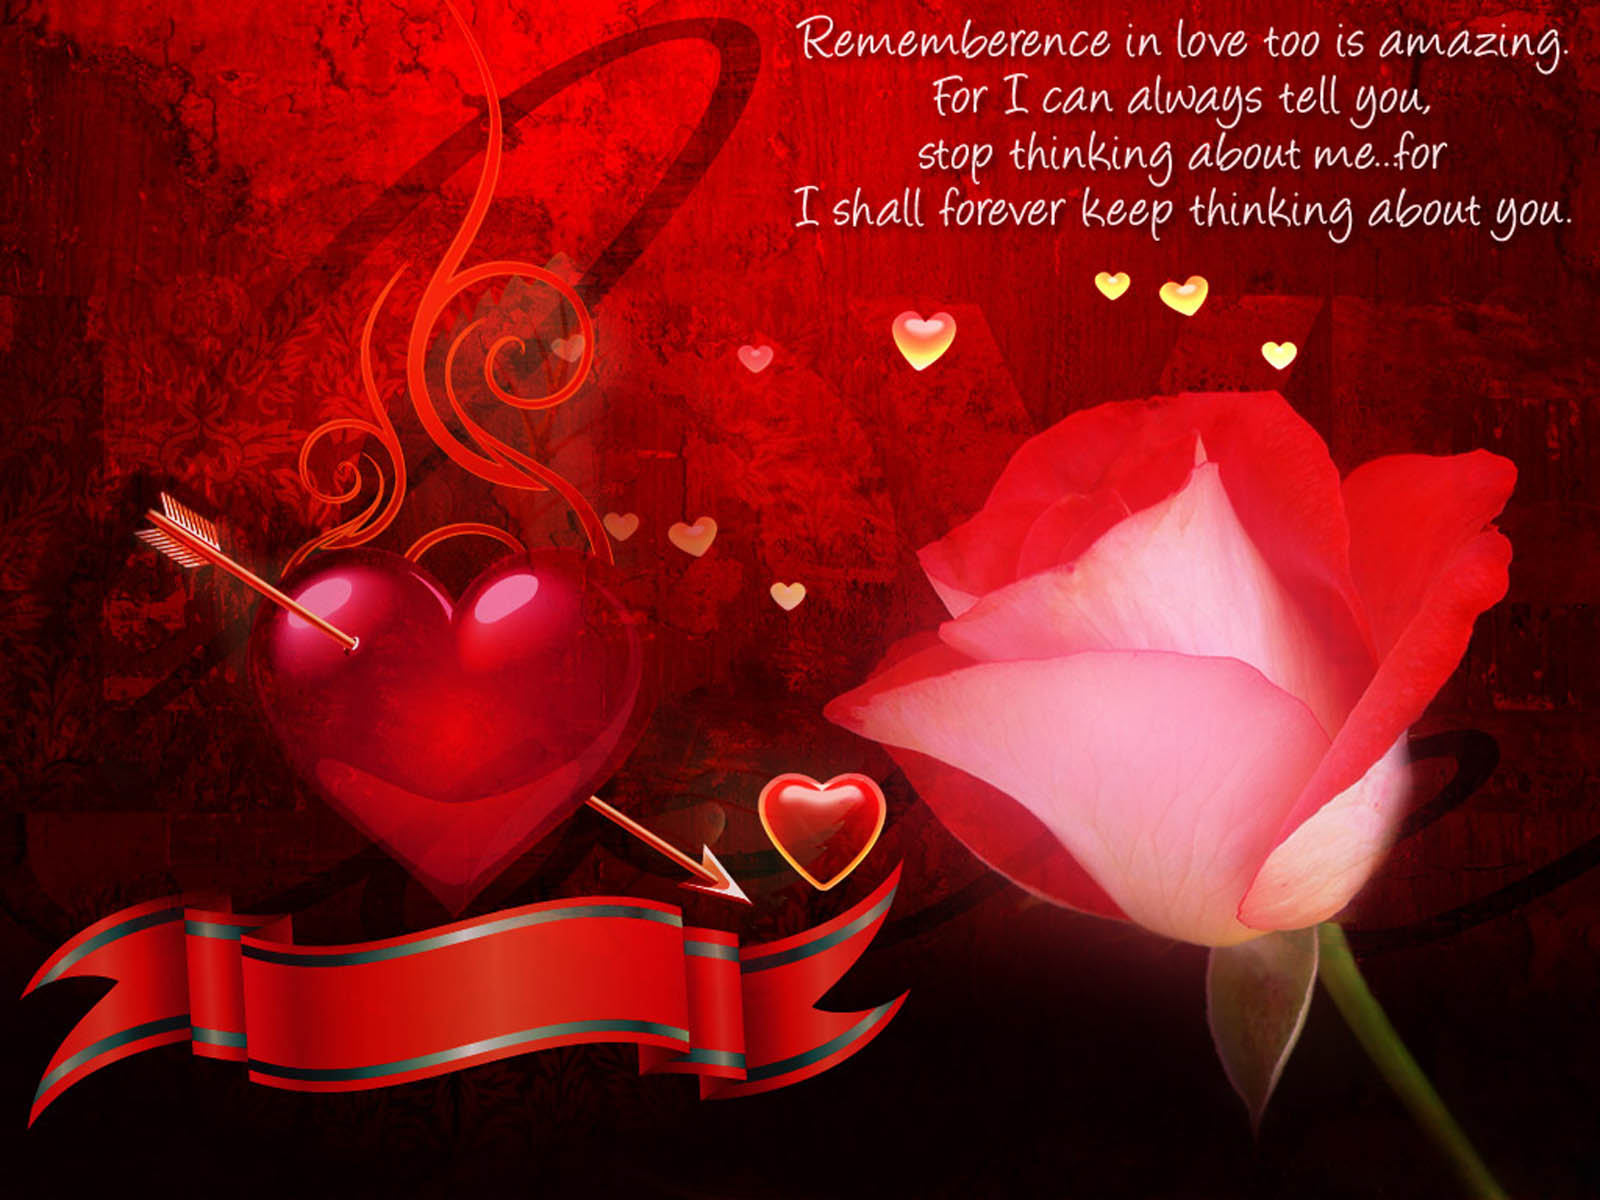 Love Wallpapers Blogspot : wallpapers: Love Quotes Desktop Wallpapers